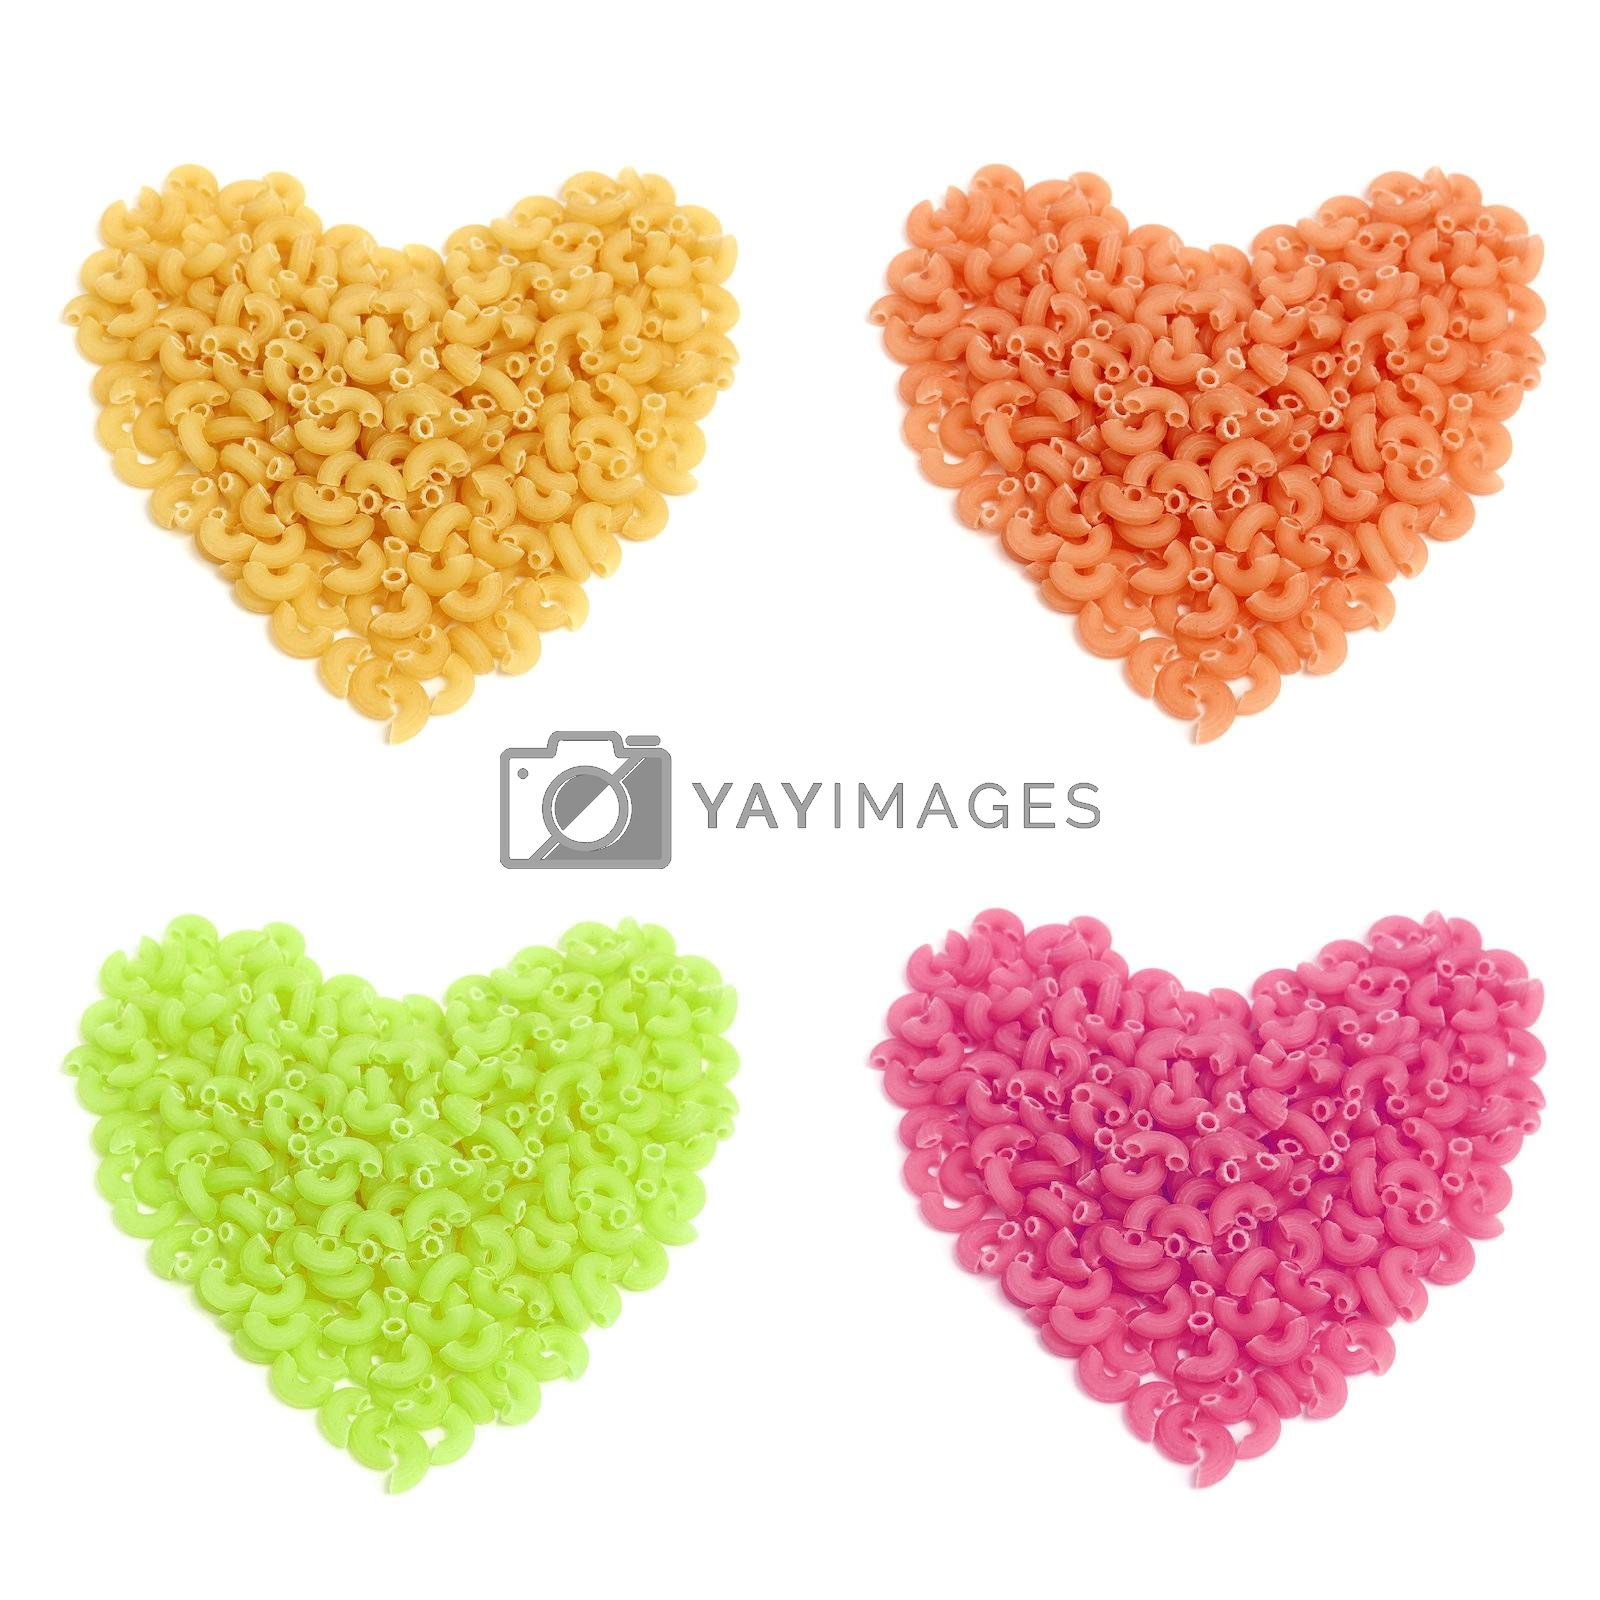 Colorful macaroni in heart shape isolated on white background